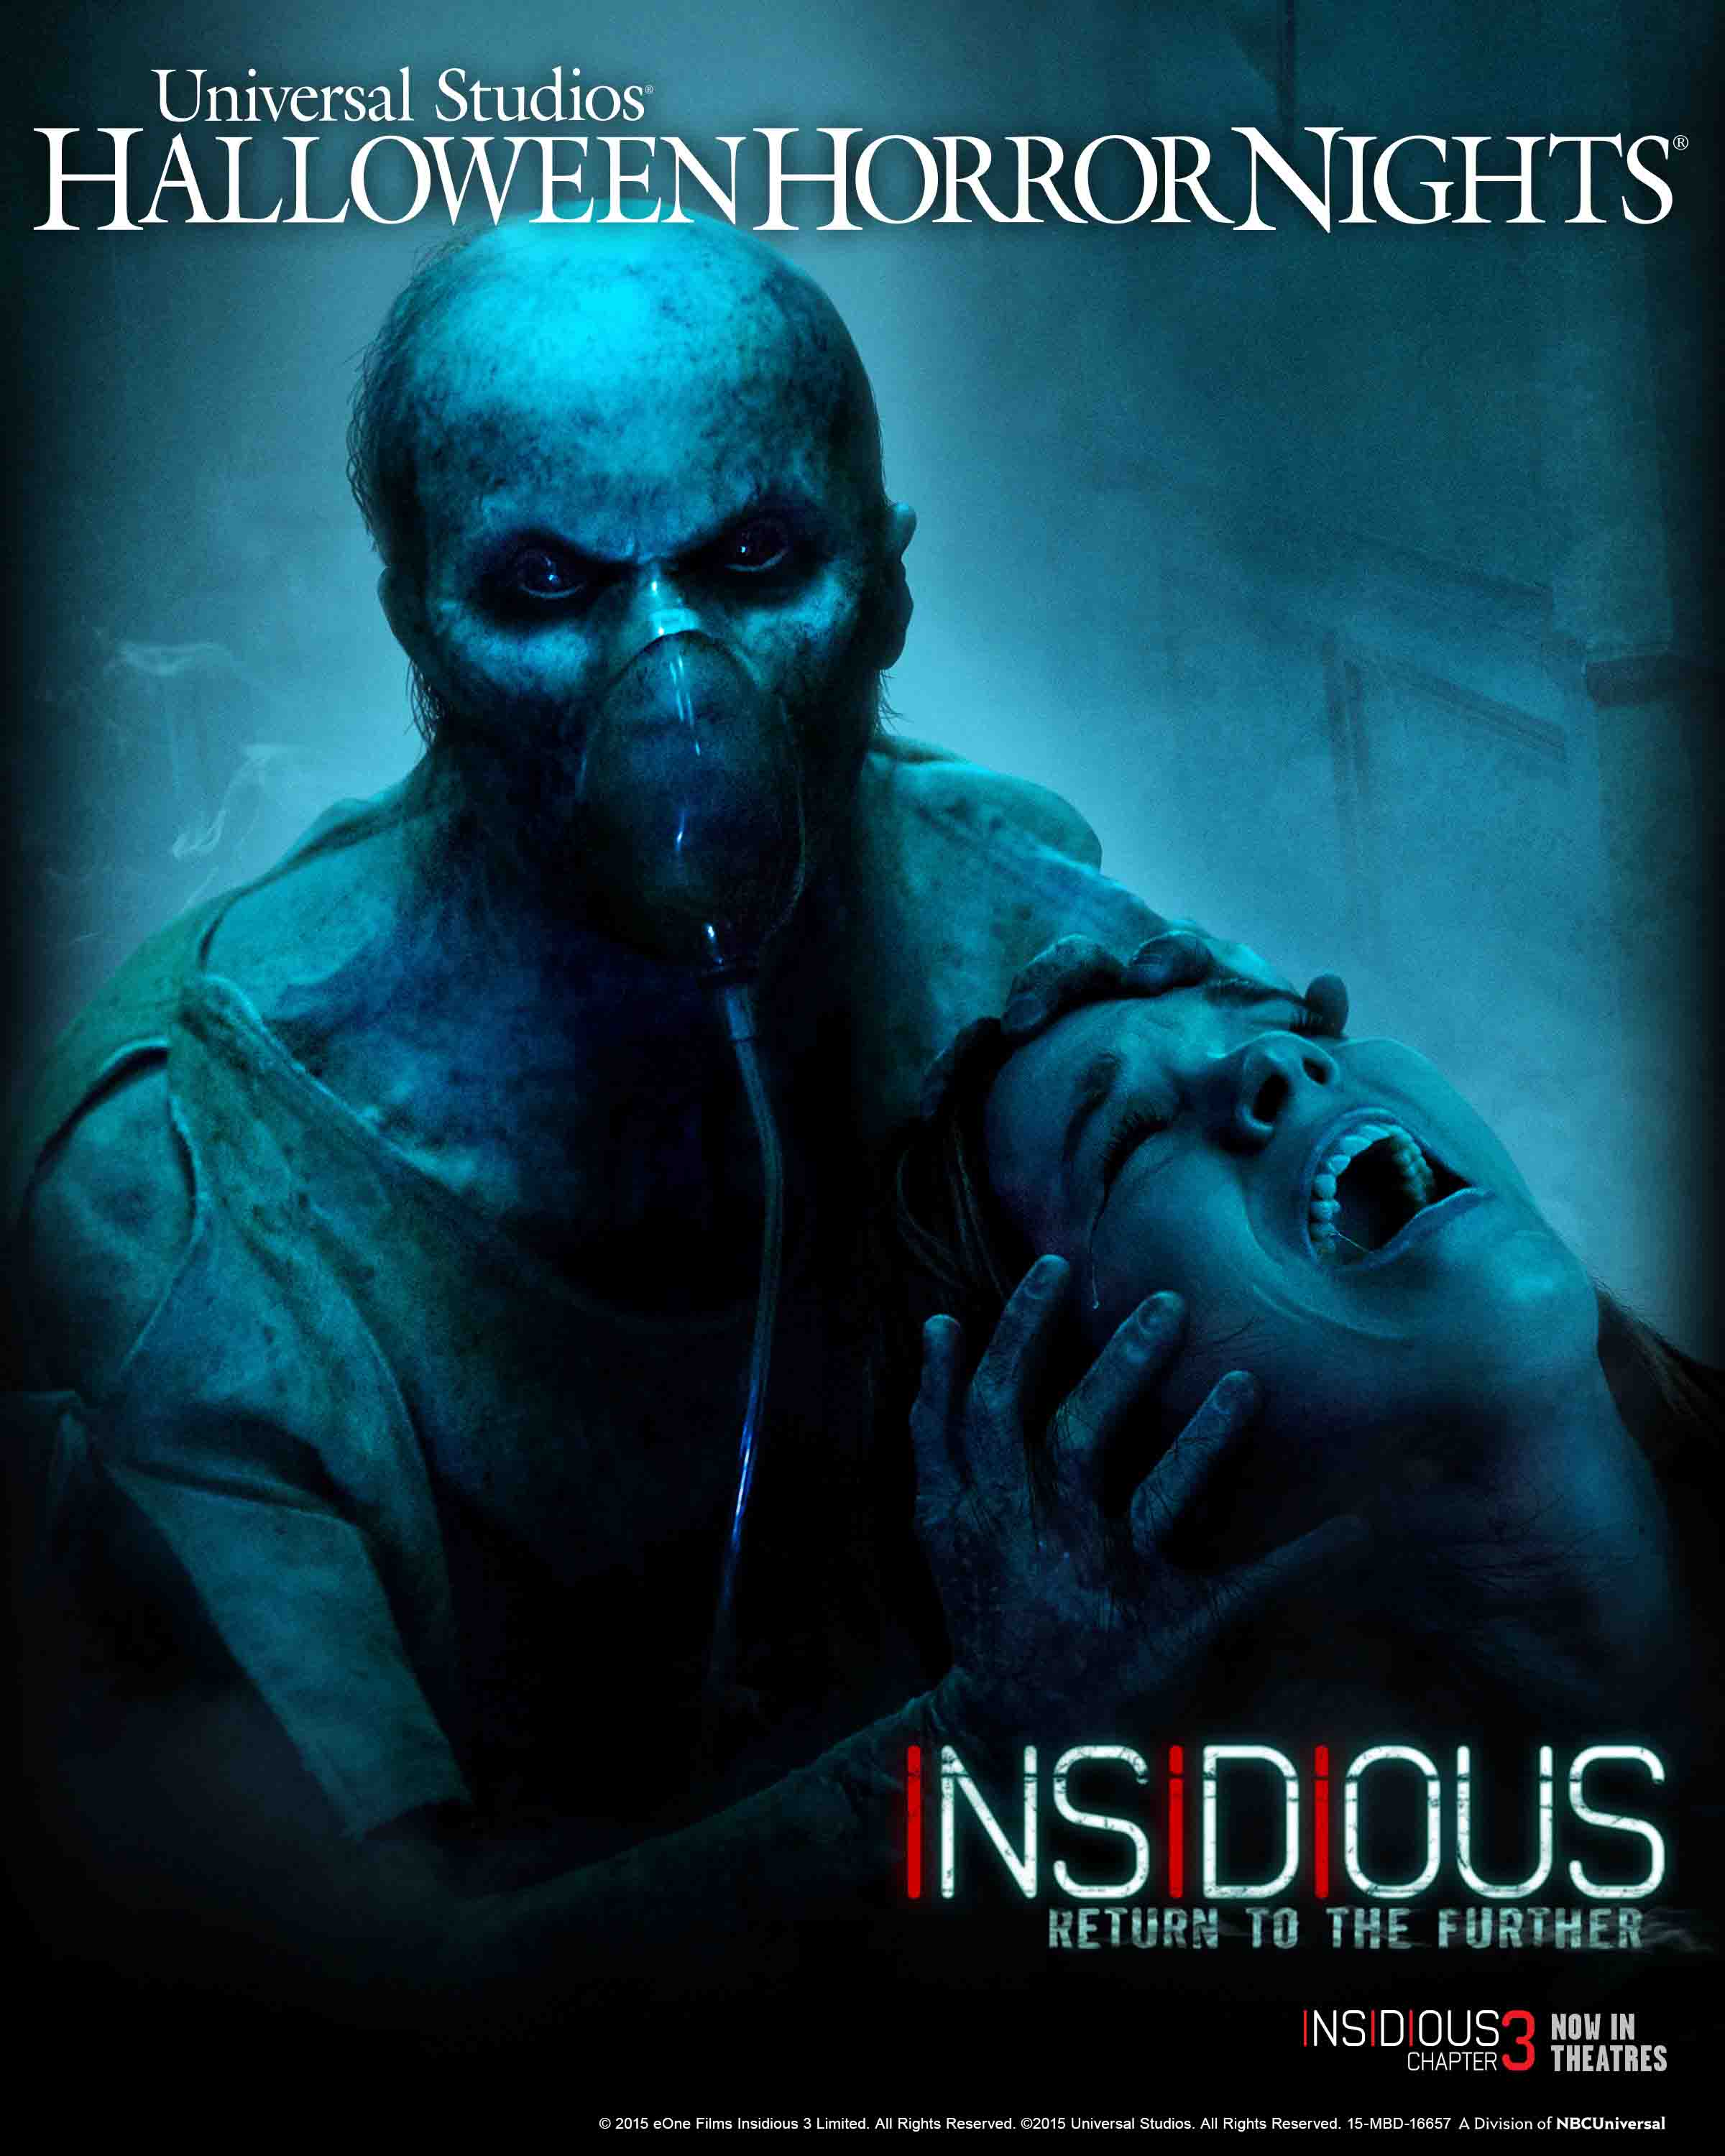 Insidious' Returns to Uni's Halloween Horror Nights - Bloody